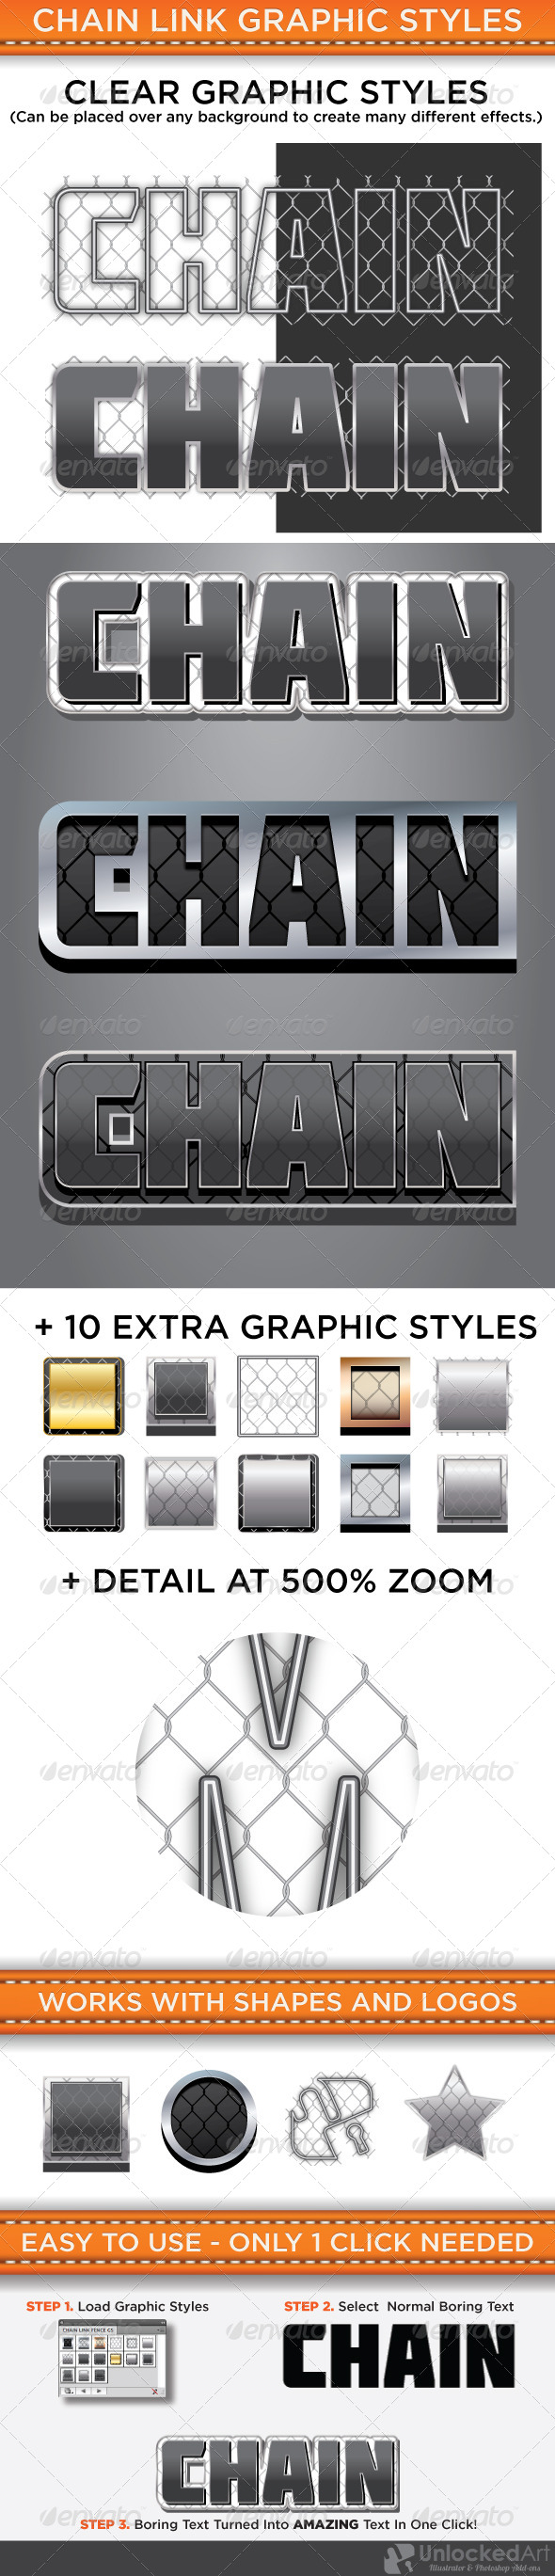 Chain Link Graphic Styles - Styles Illustrator